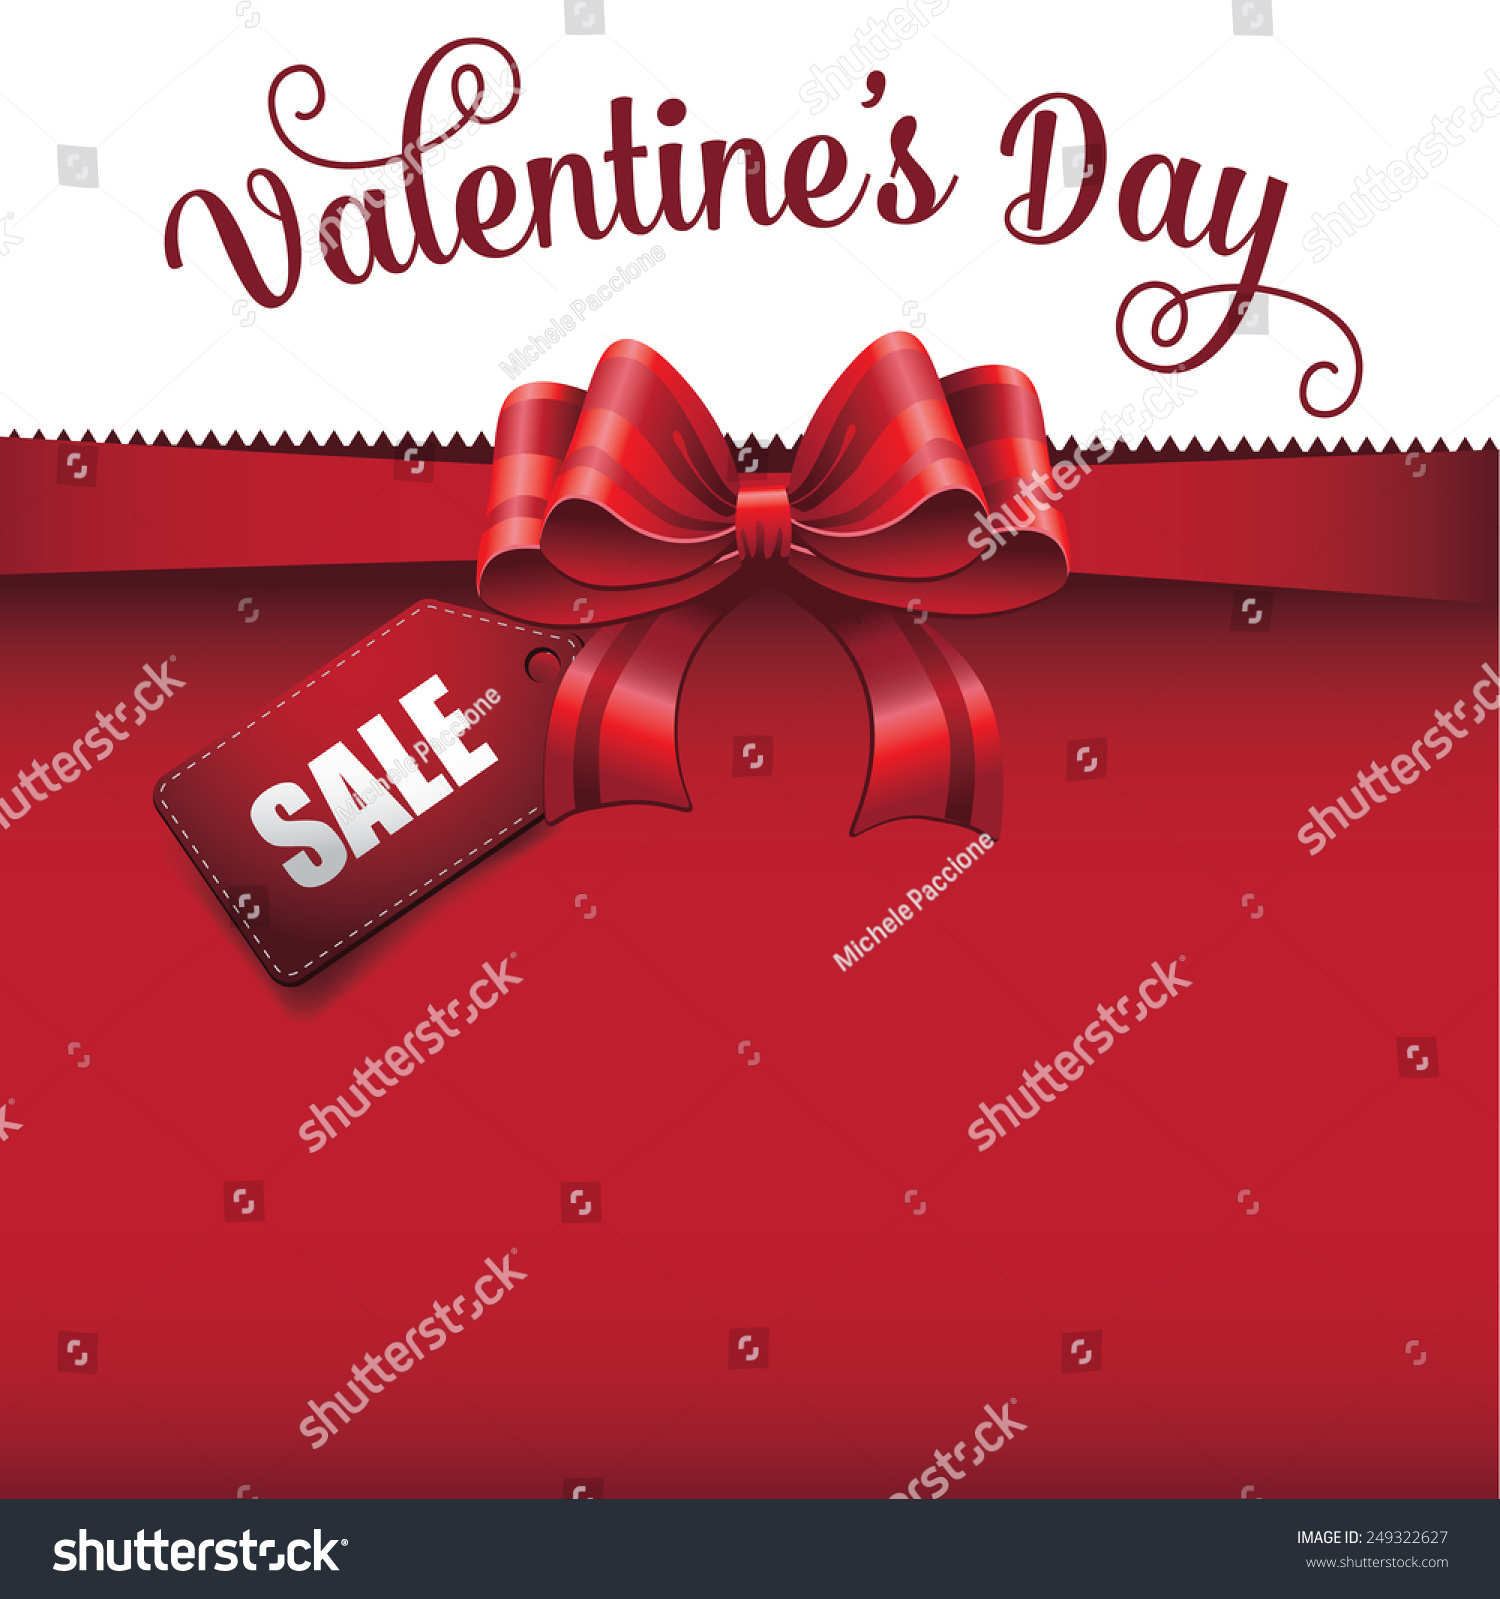 valentines day big red bow stock vector shutterstock valentines day big red bow design advertising template background eps 10 vector royalty stock